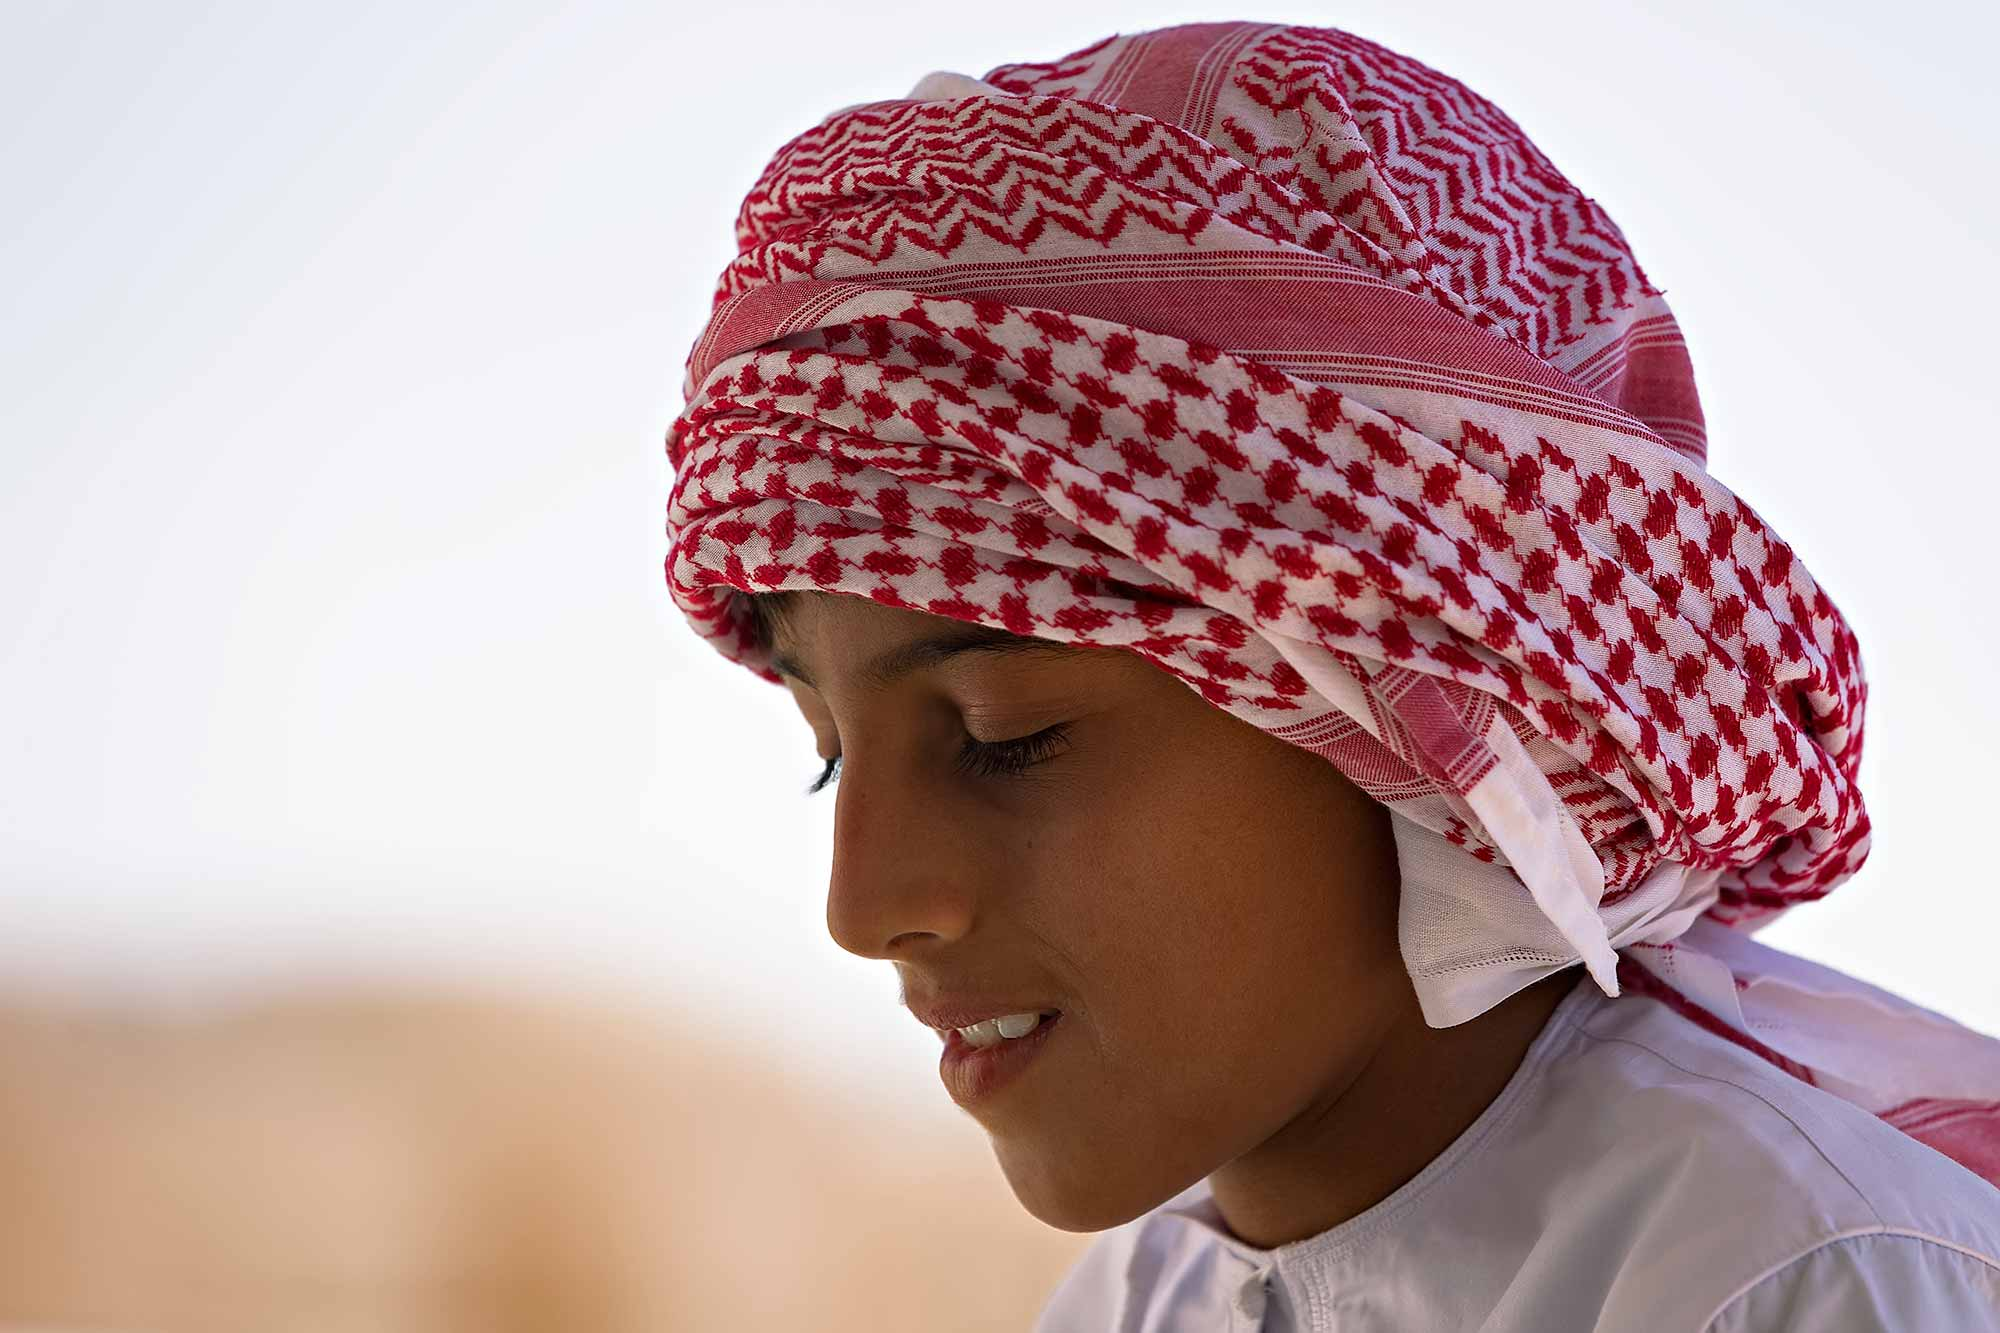 Portrait of a boy in southern Oman. © Ulli Maier & Nisa Maier